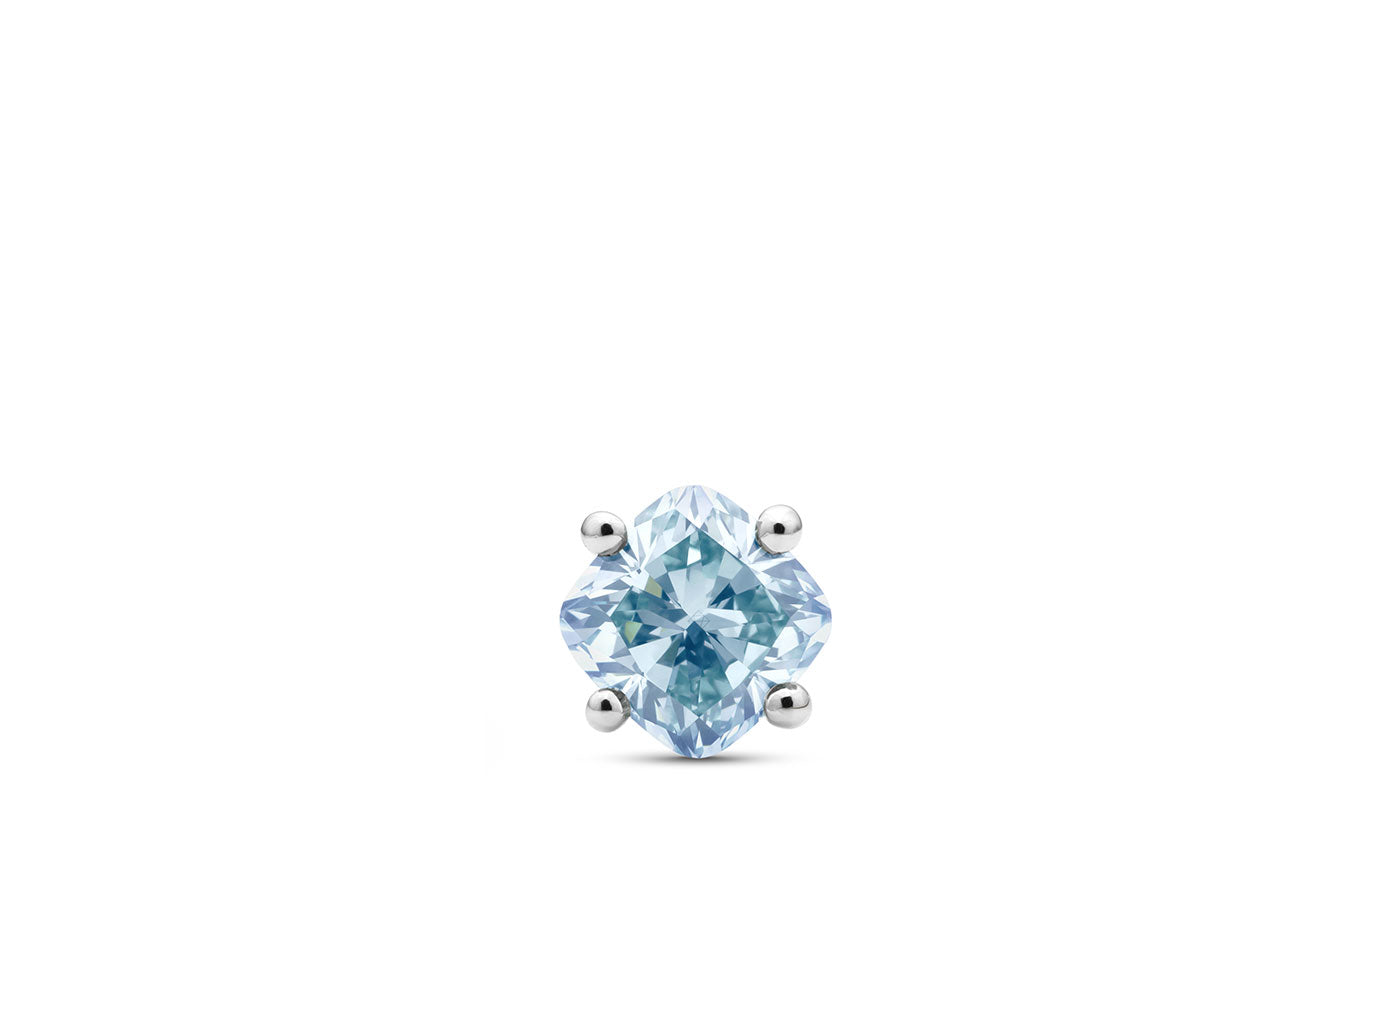 Front view of Cushion 1 carat stud with blue diamond